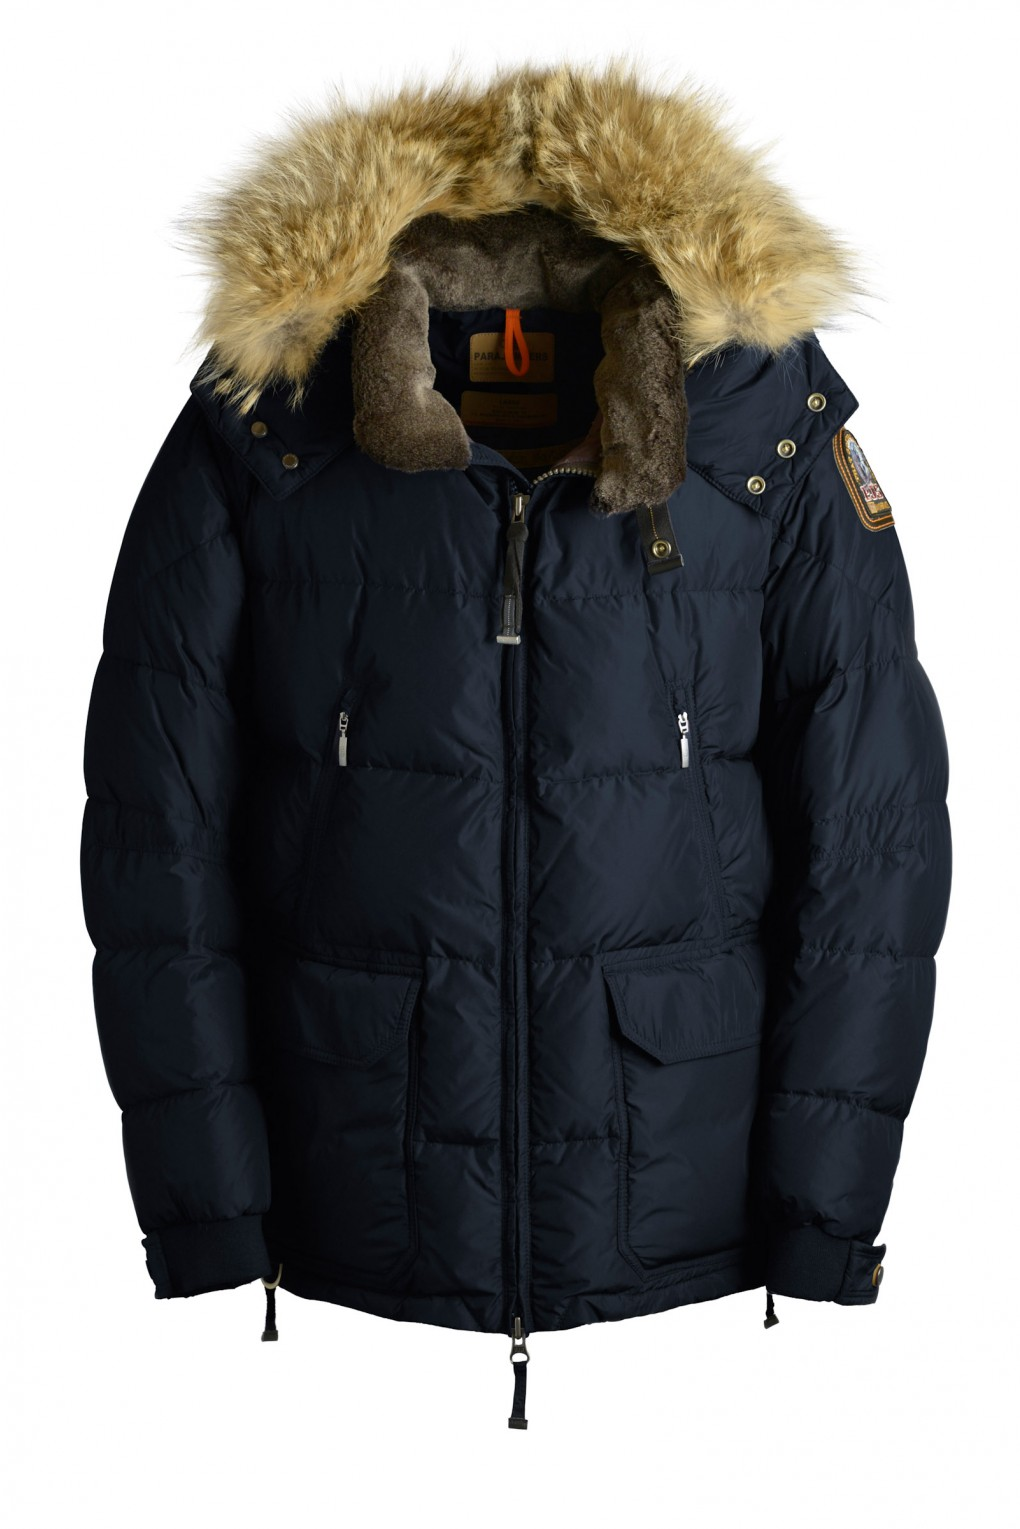 parajumpers MAINE man outerwear Navy